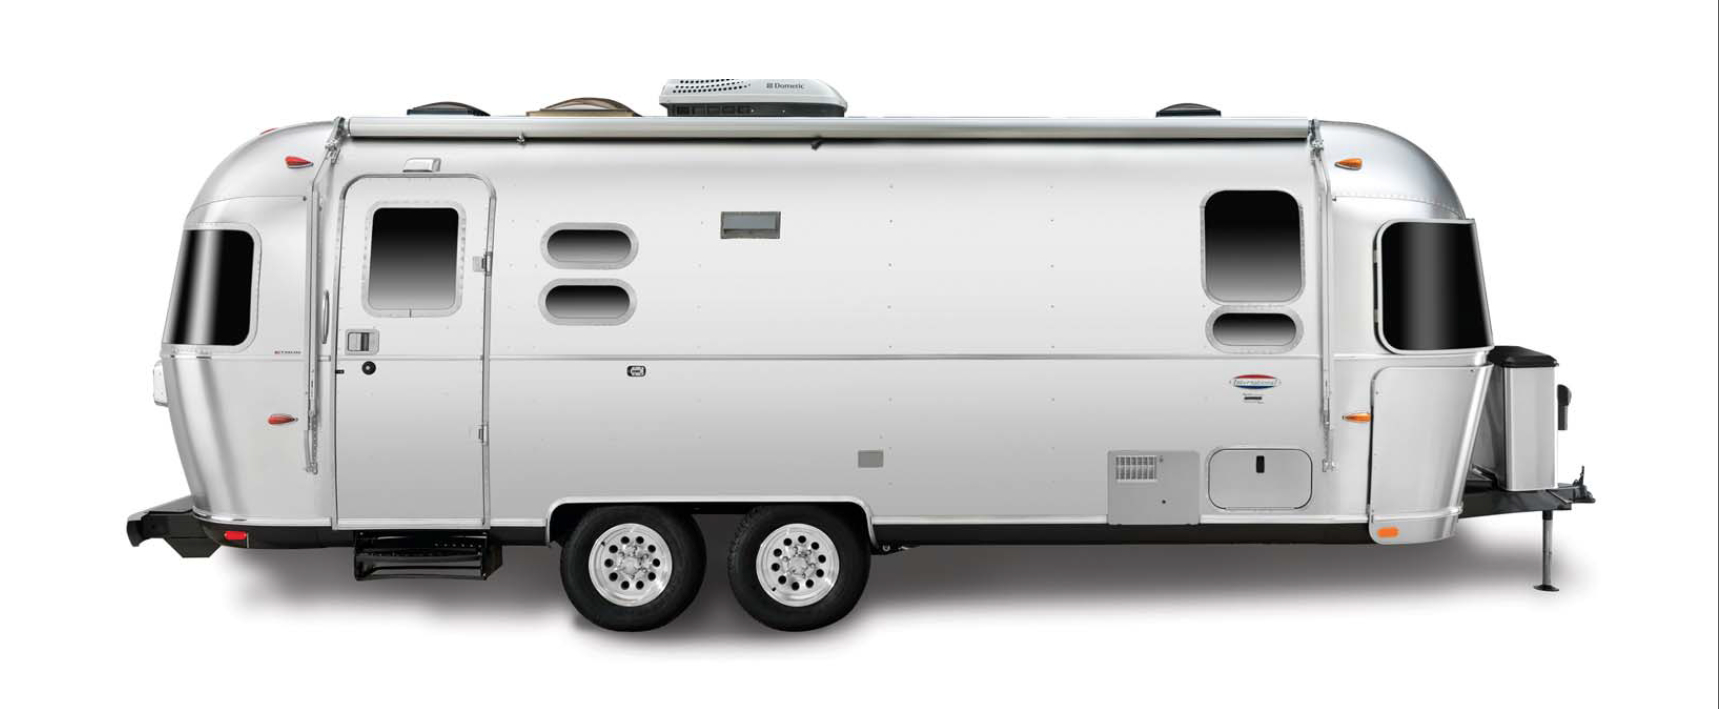 Motelluxe's 25 foot newest Airstream